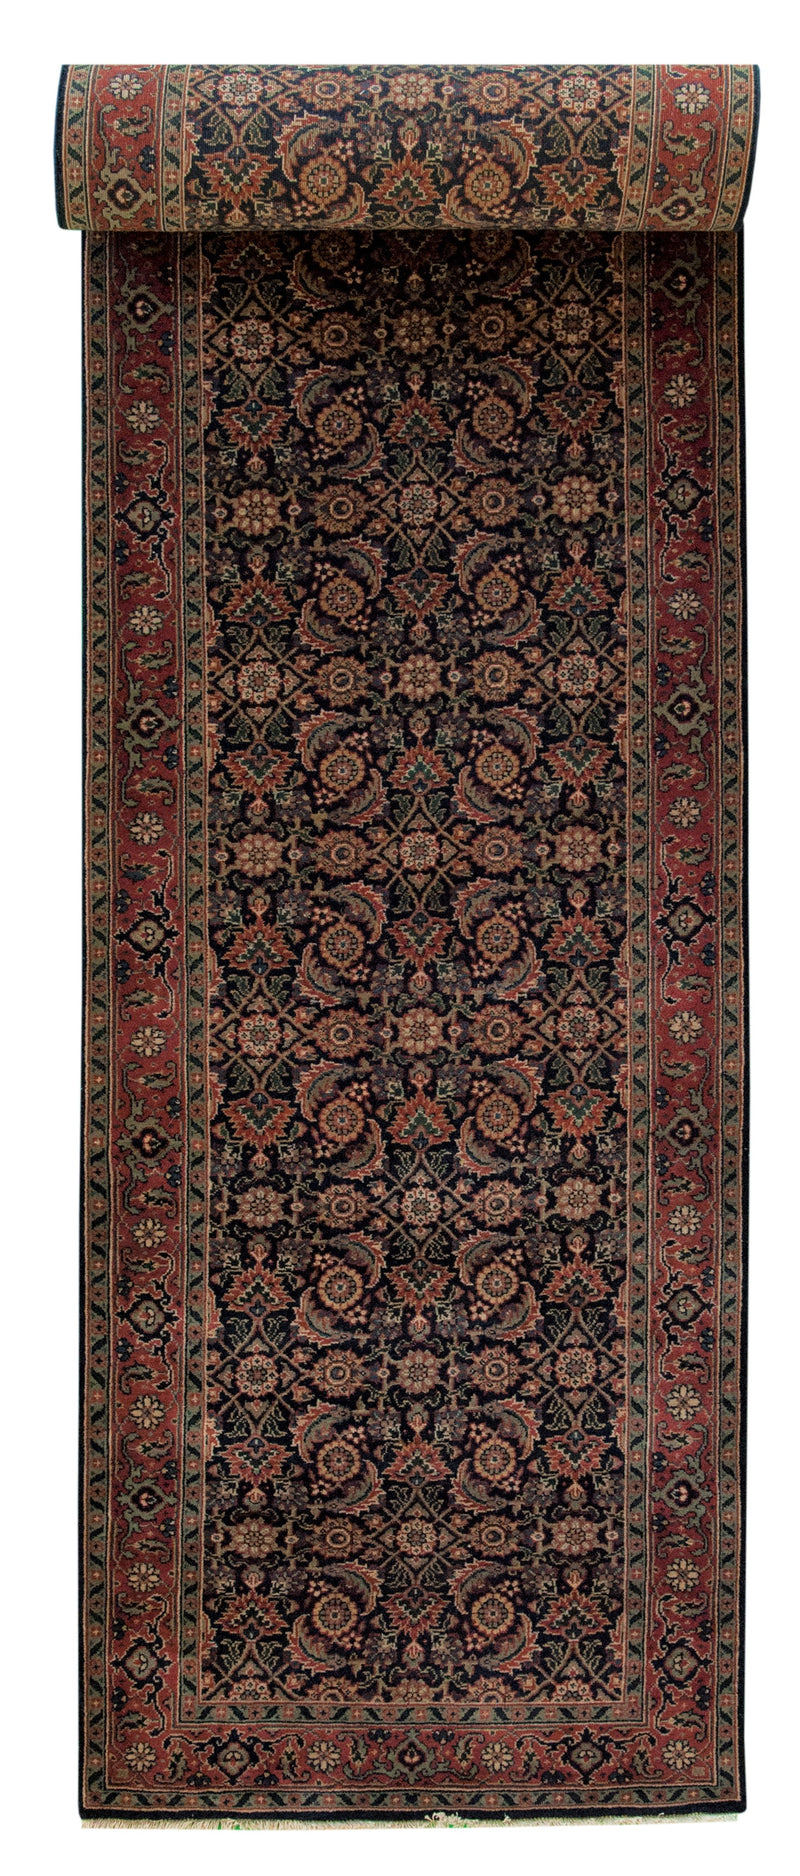 Jaipur Runner Black 2'6x10